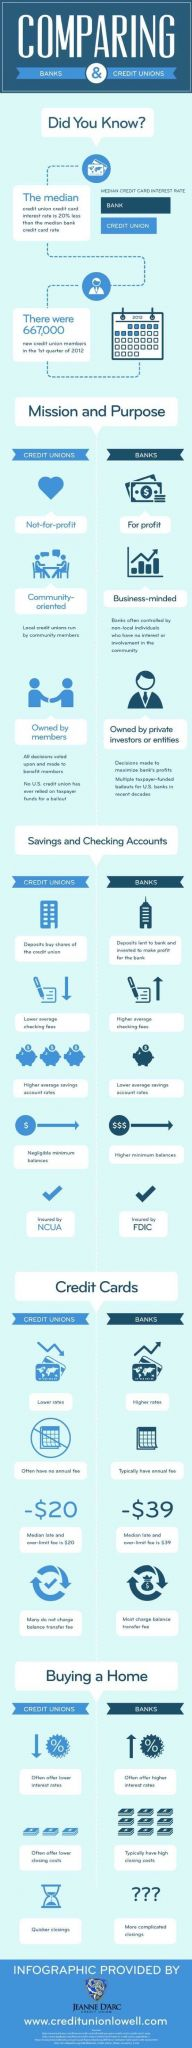 Fannie Mae Homestyle Renovation Maximum Mortgage Worksheet as Well as 3651 Best Mortgage Payoff Images On Pinterest